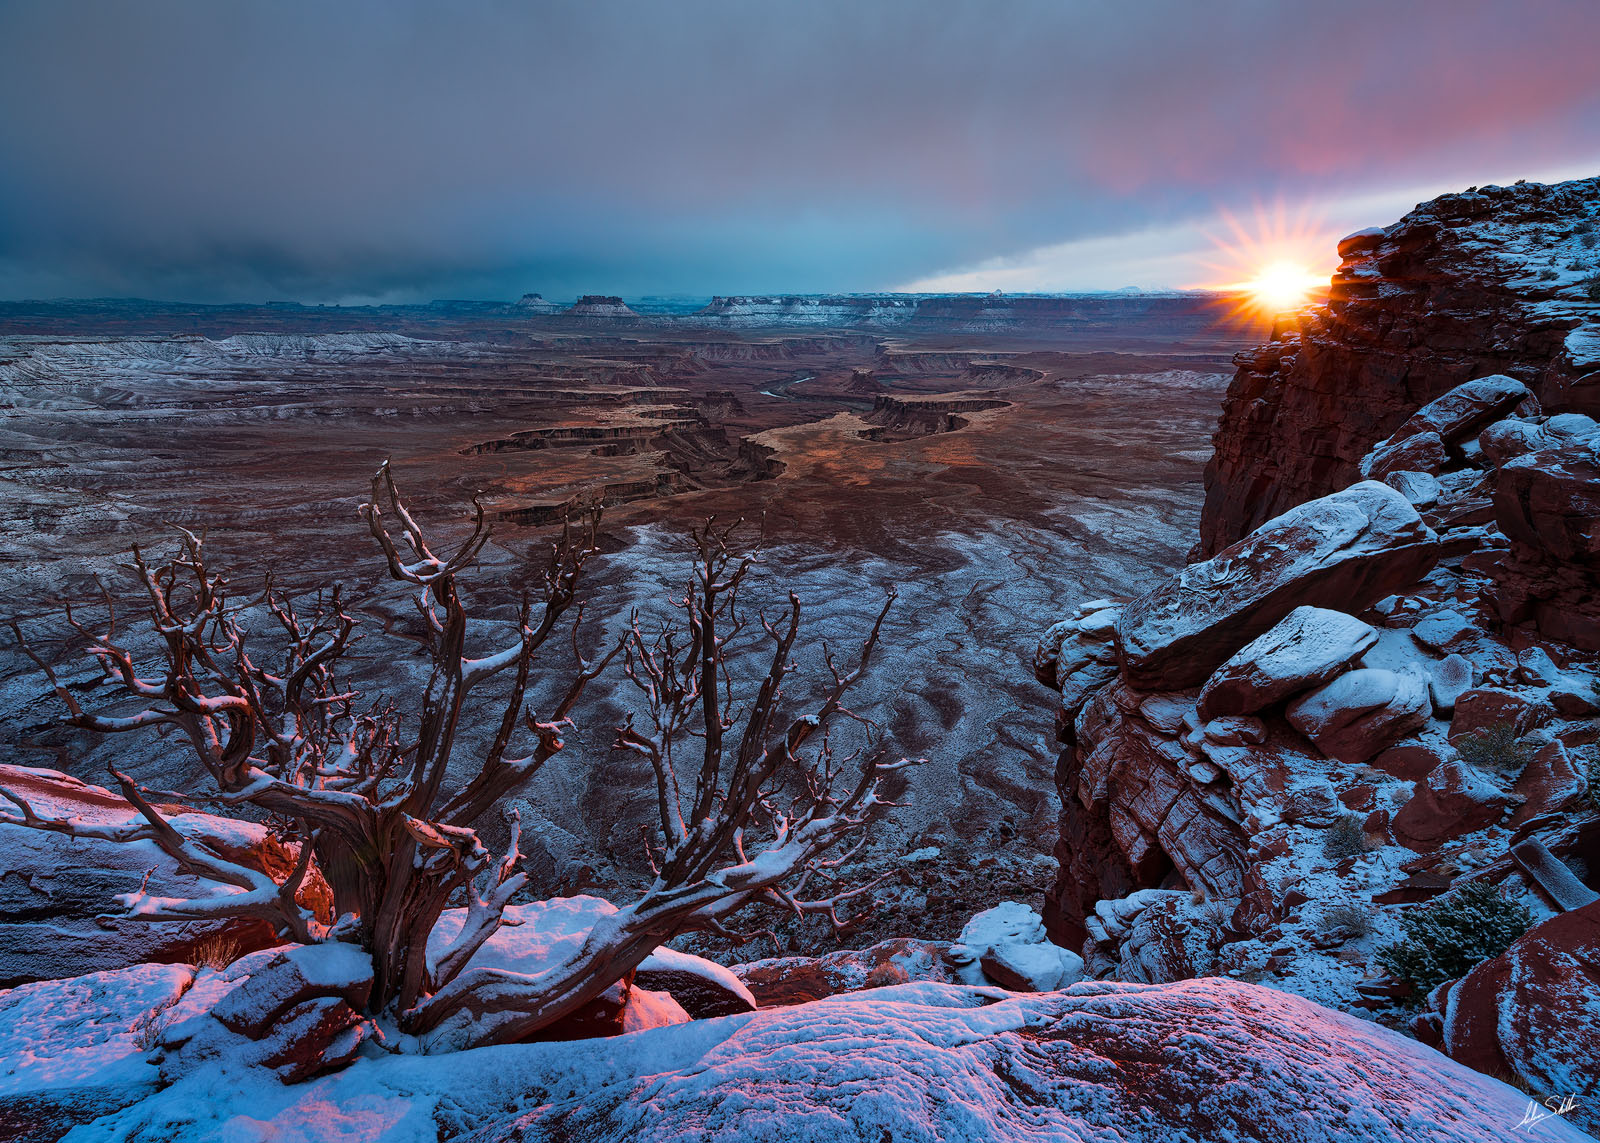 Canyonlands, Canyonlands National Park, Green River Overlook, Island in the Sky, Moab, National Park, UT, Utah, Winter, photo